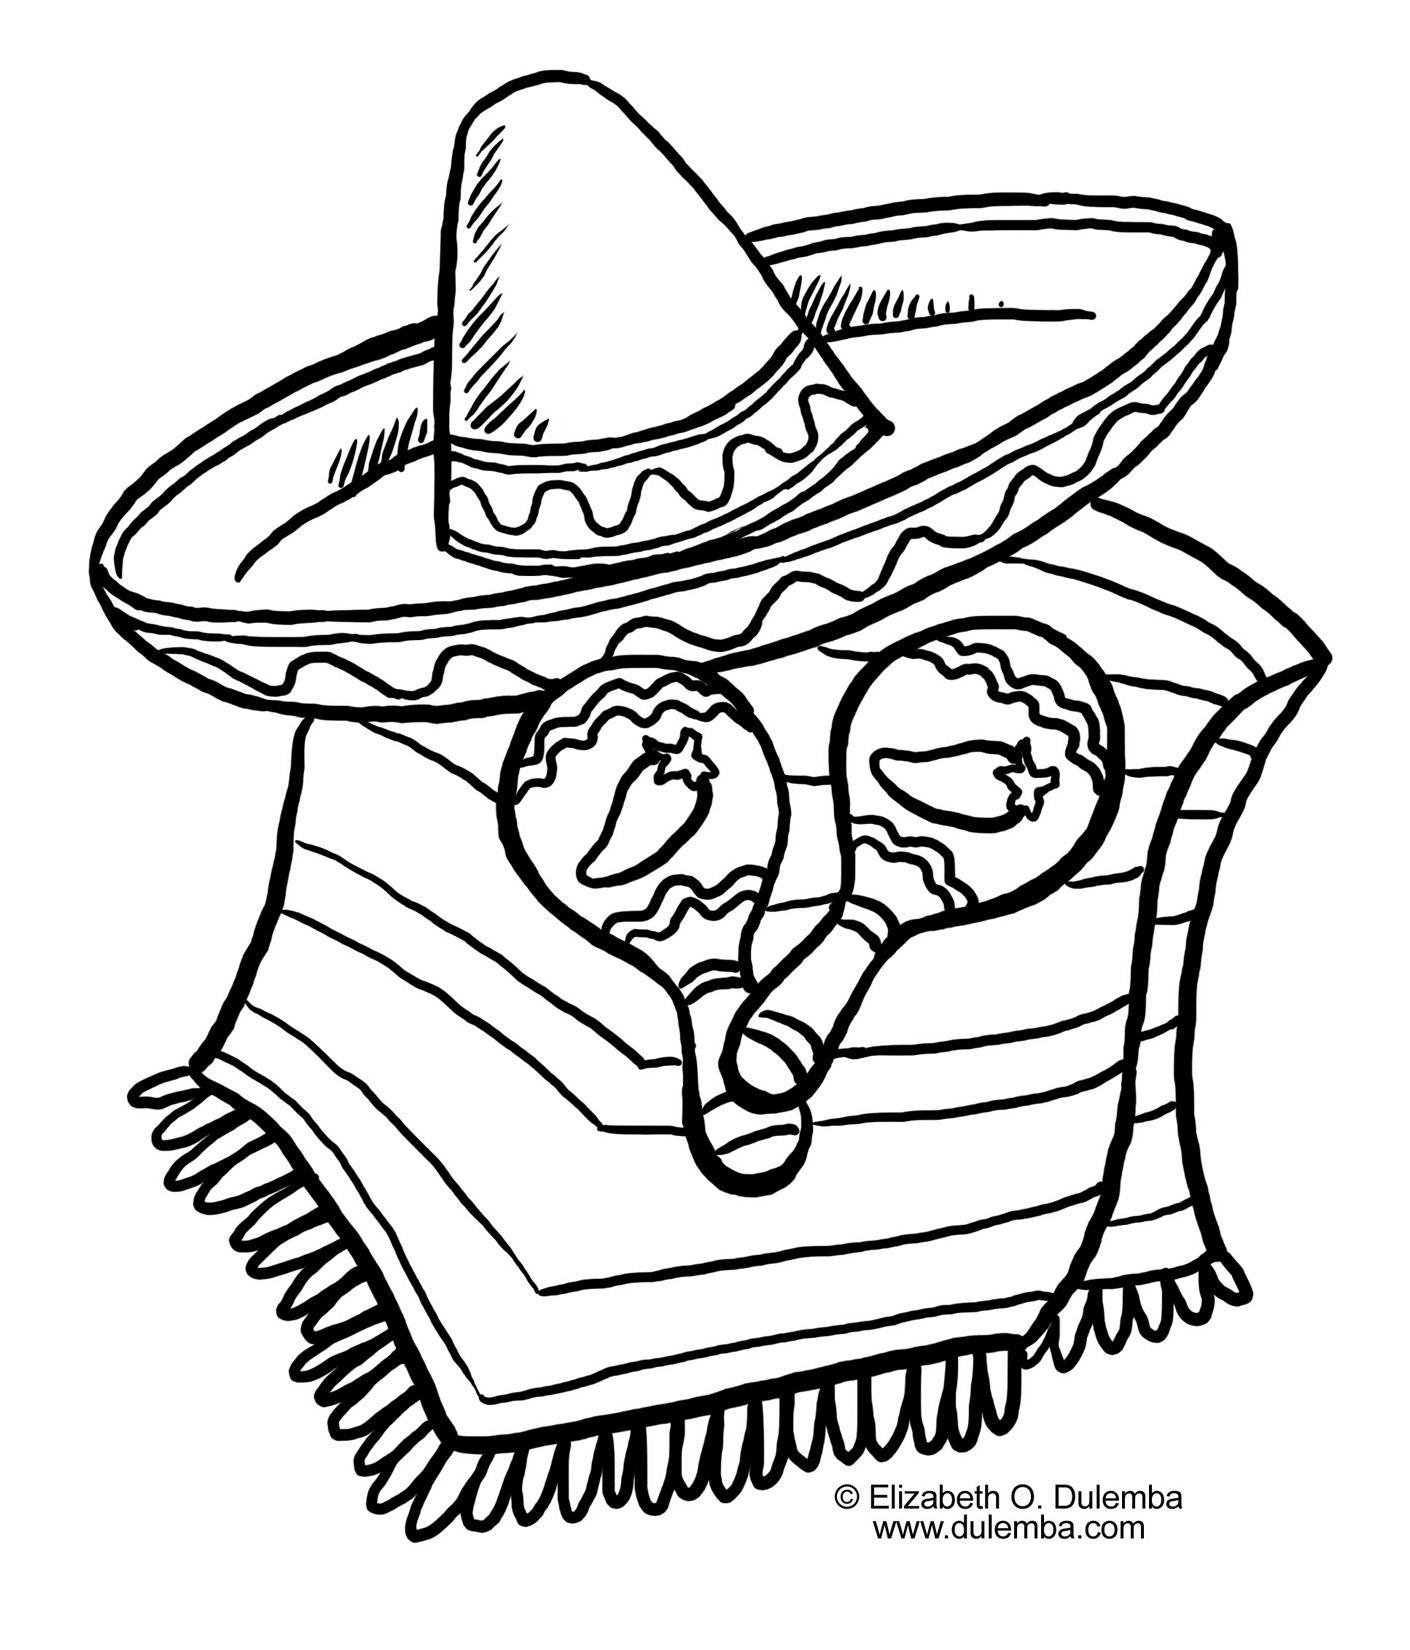 sombrero drawing at getdrawings com free for personal use sombrero